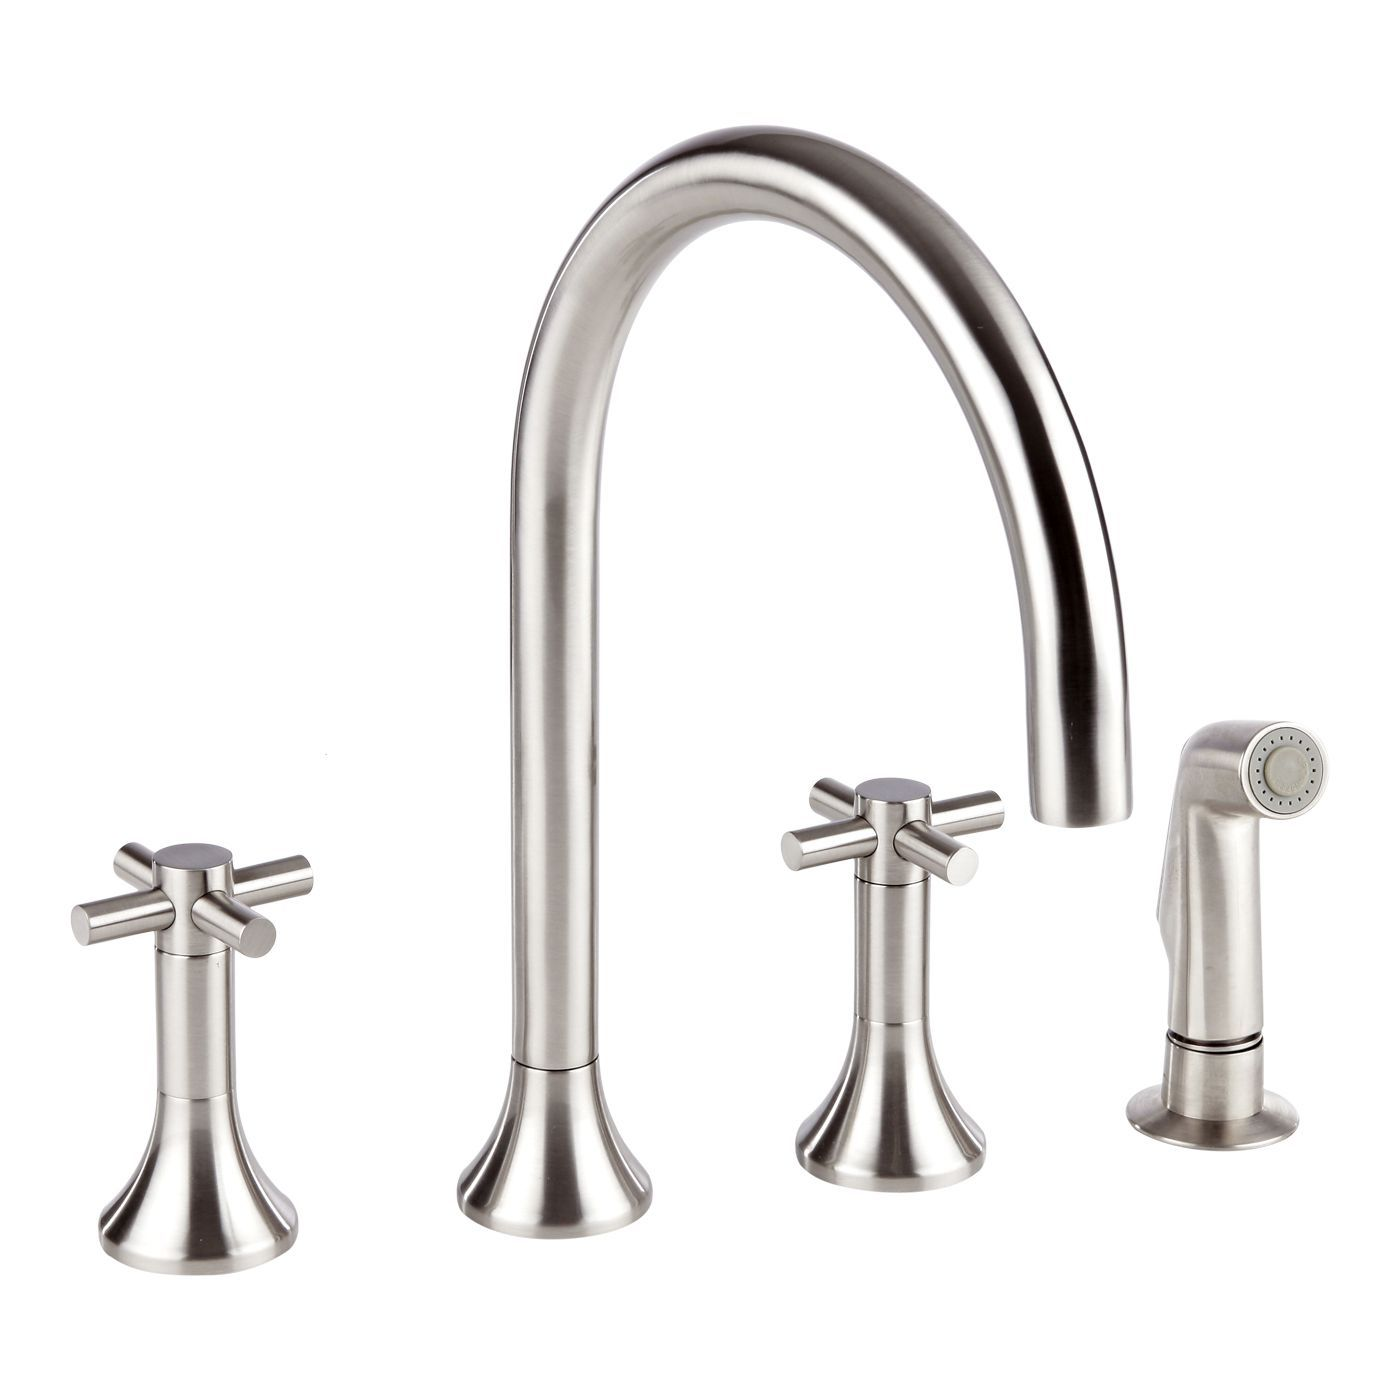 widespread kitchen faucet play dishes tec with side spray